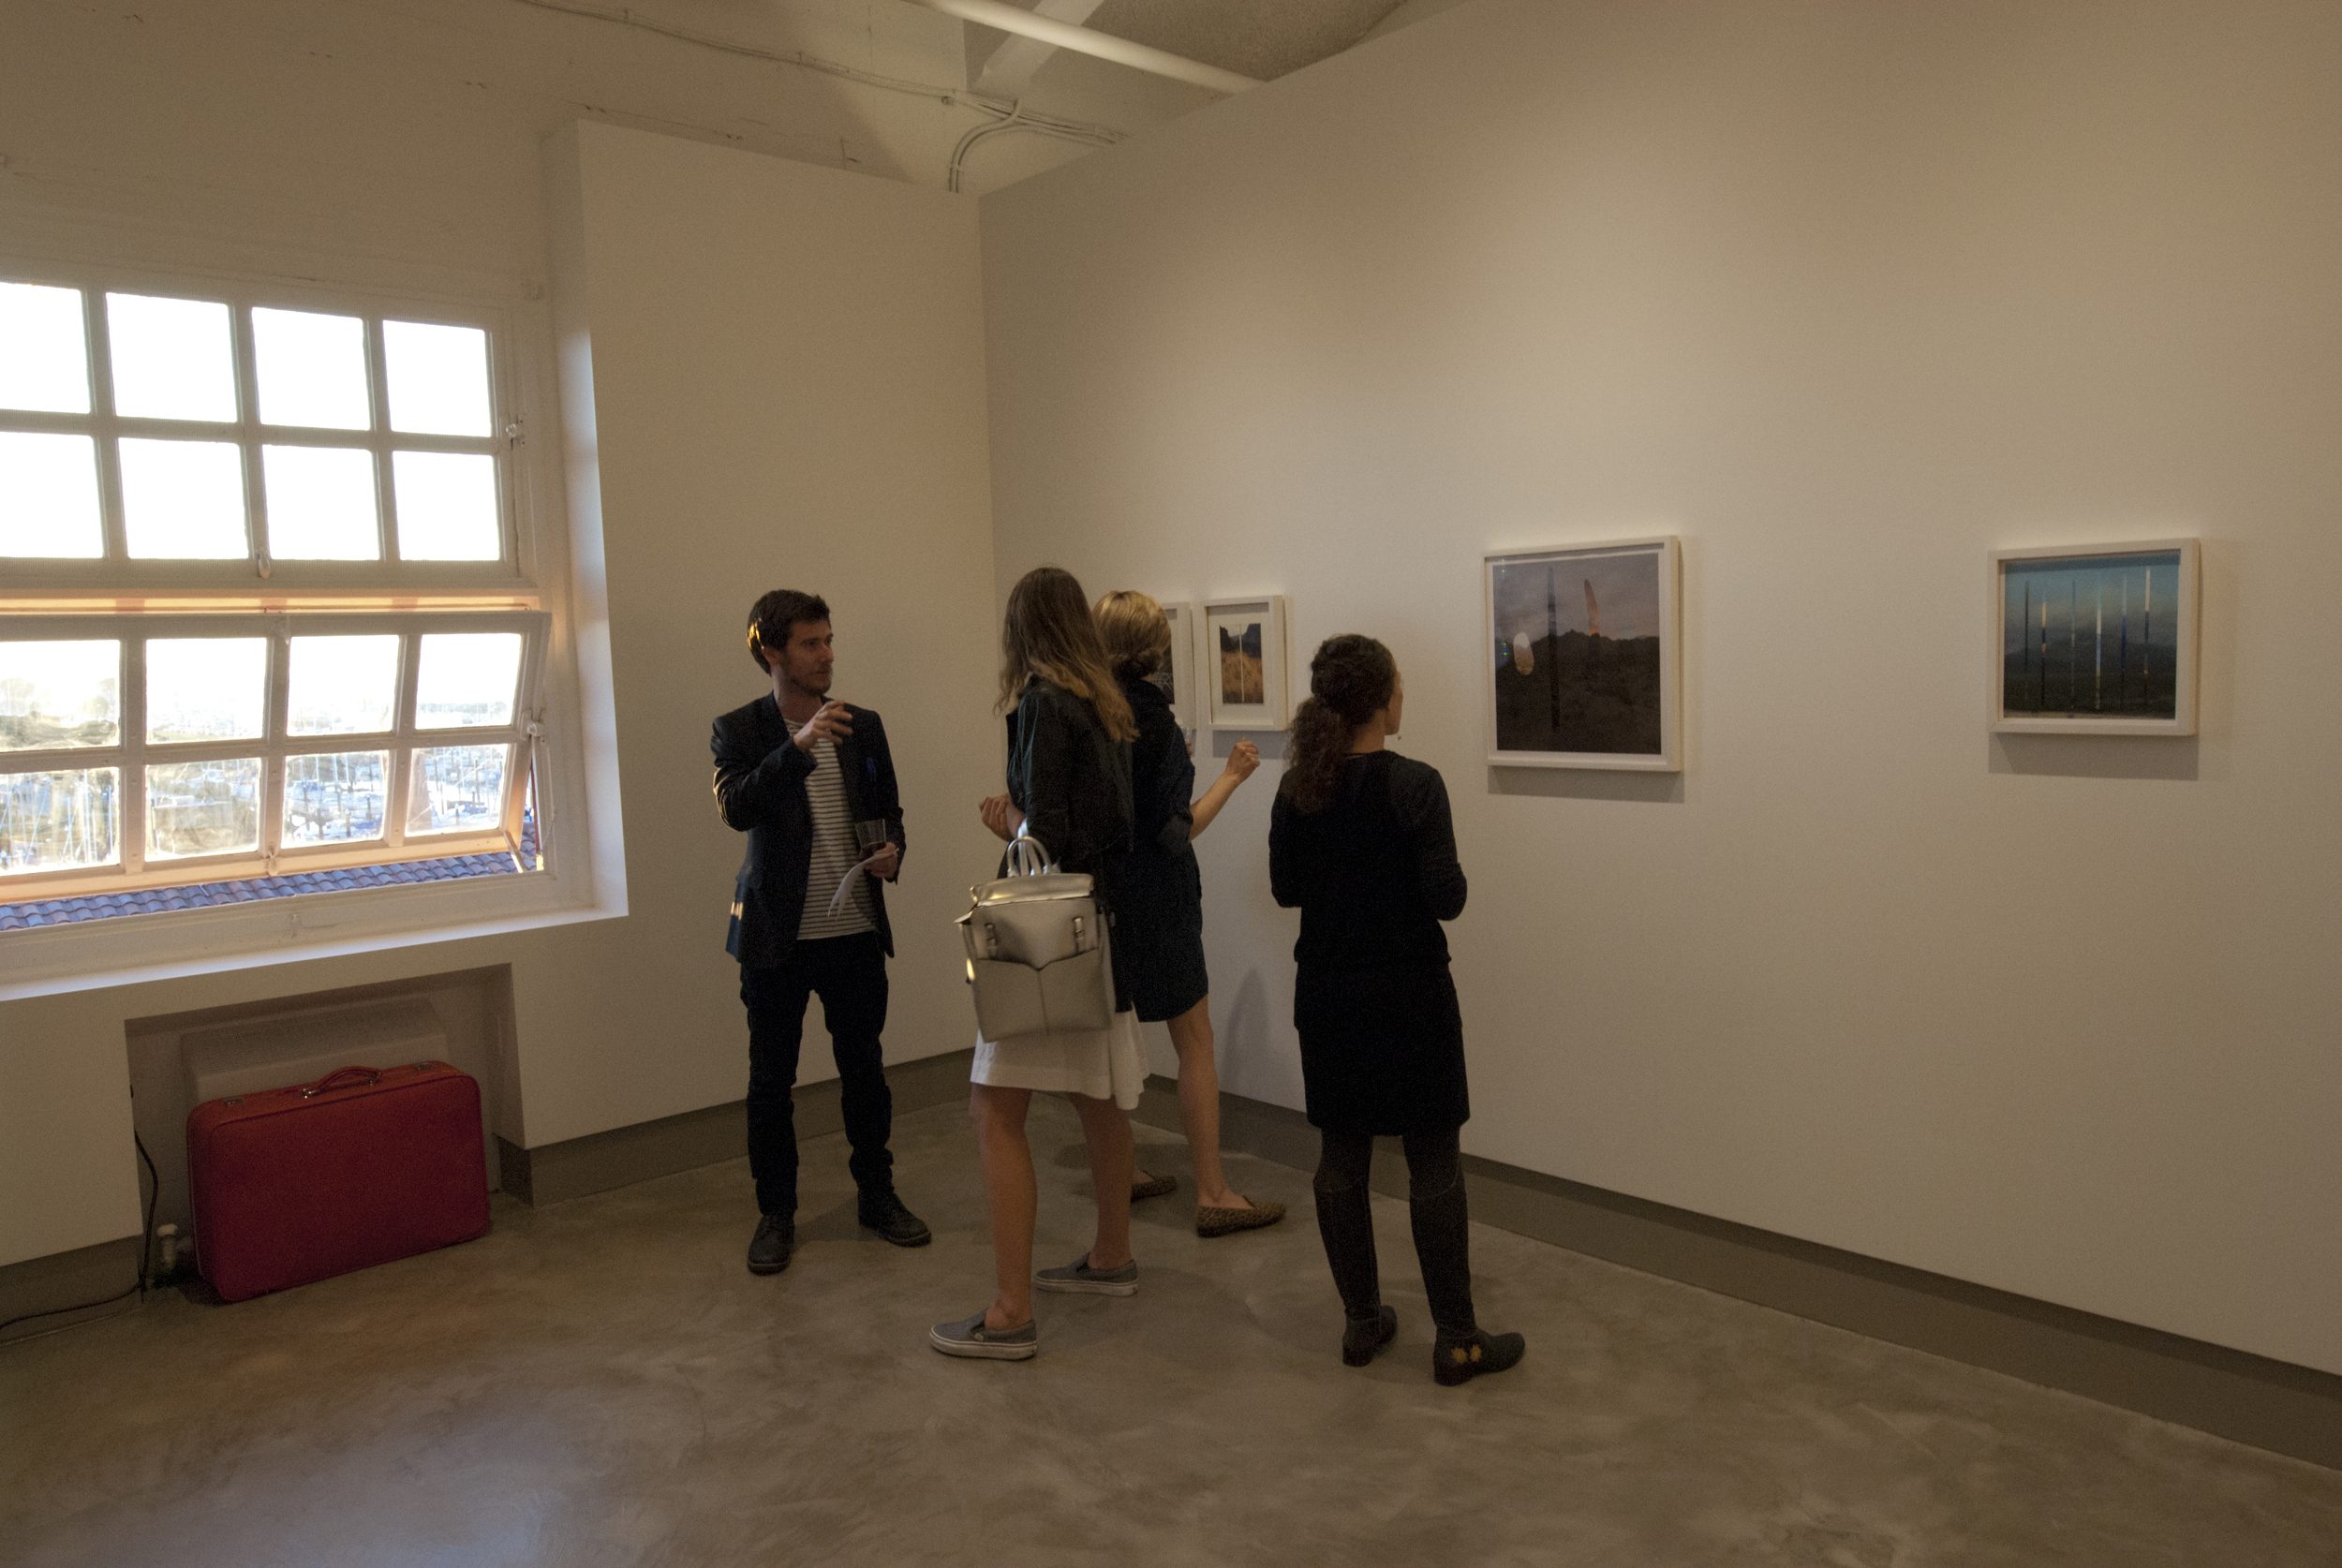 Early arrivals enjoy photography by Jacqueline Norheim